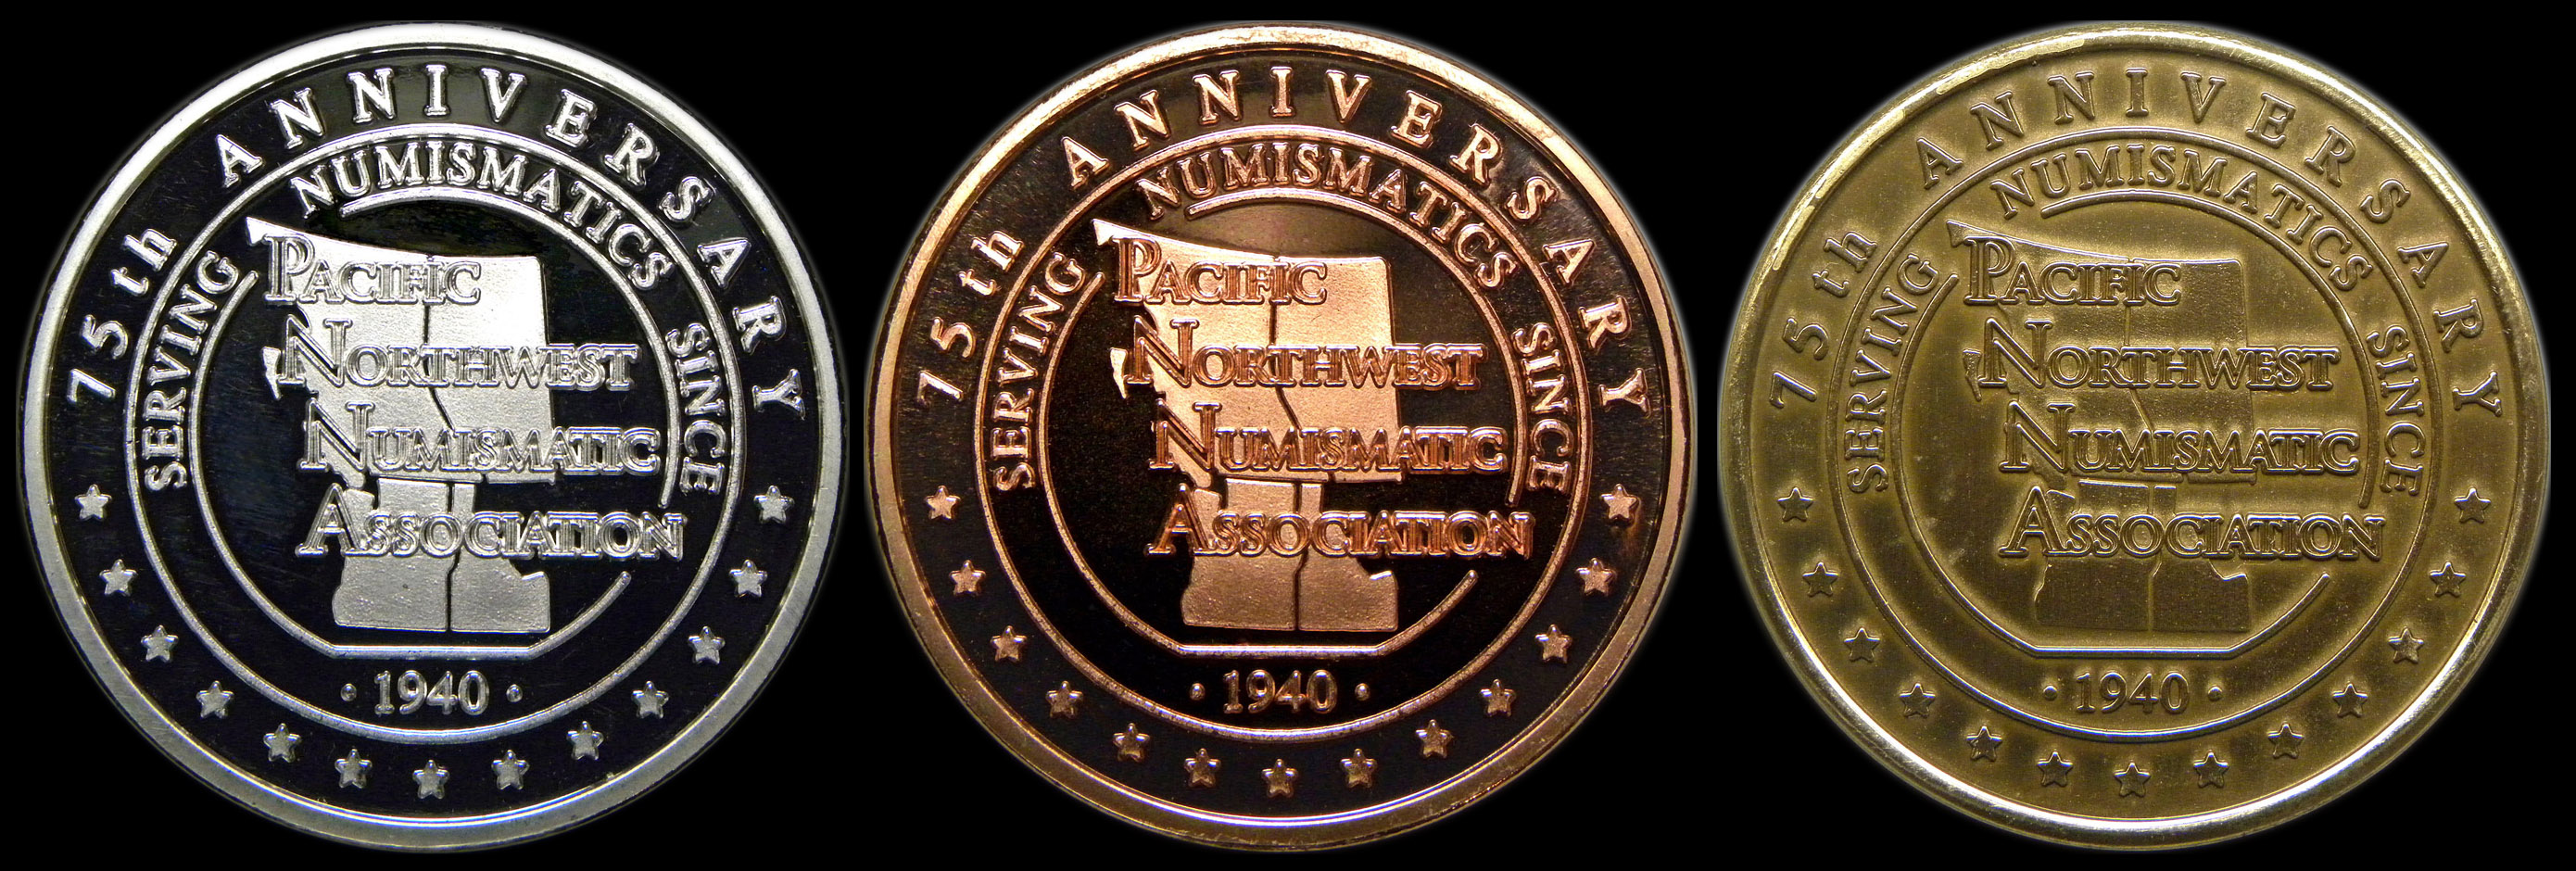 c1510 threemedal set in boxhinged case 39 mm pnna 75th anniversary medal the obverse of the medal was designed by former us mint